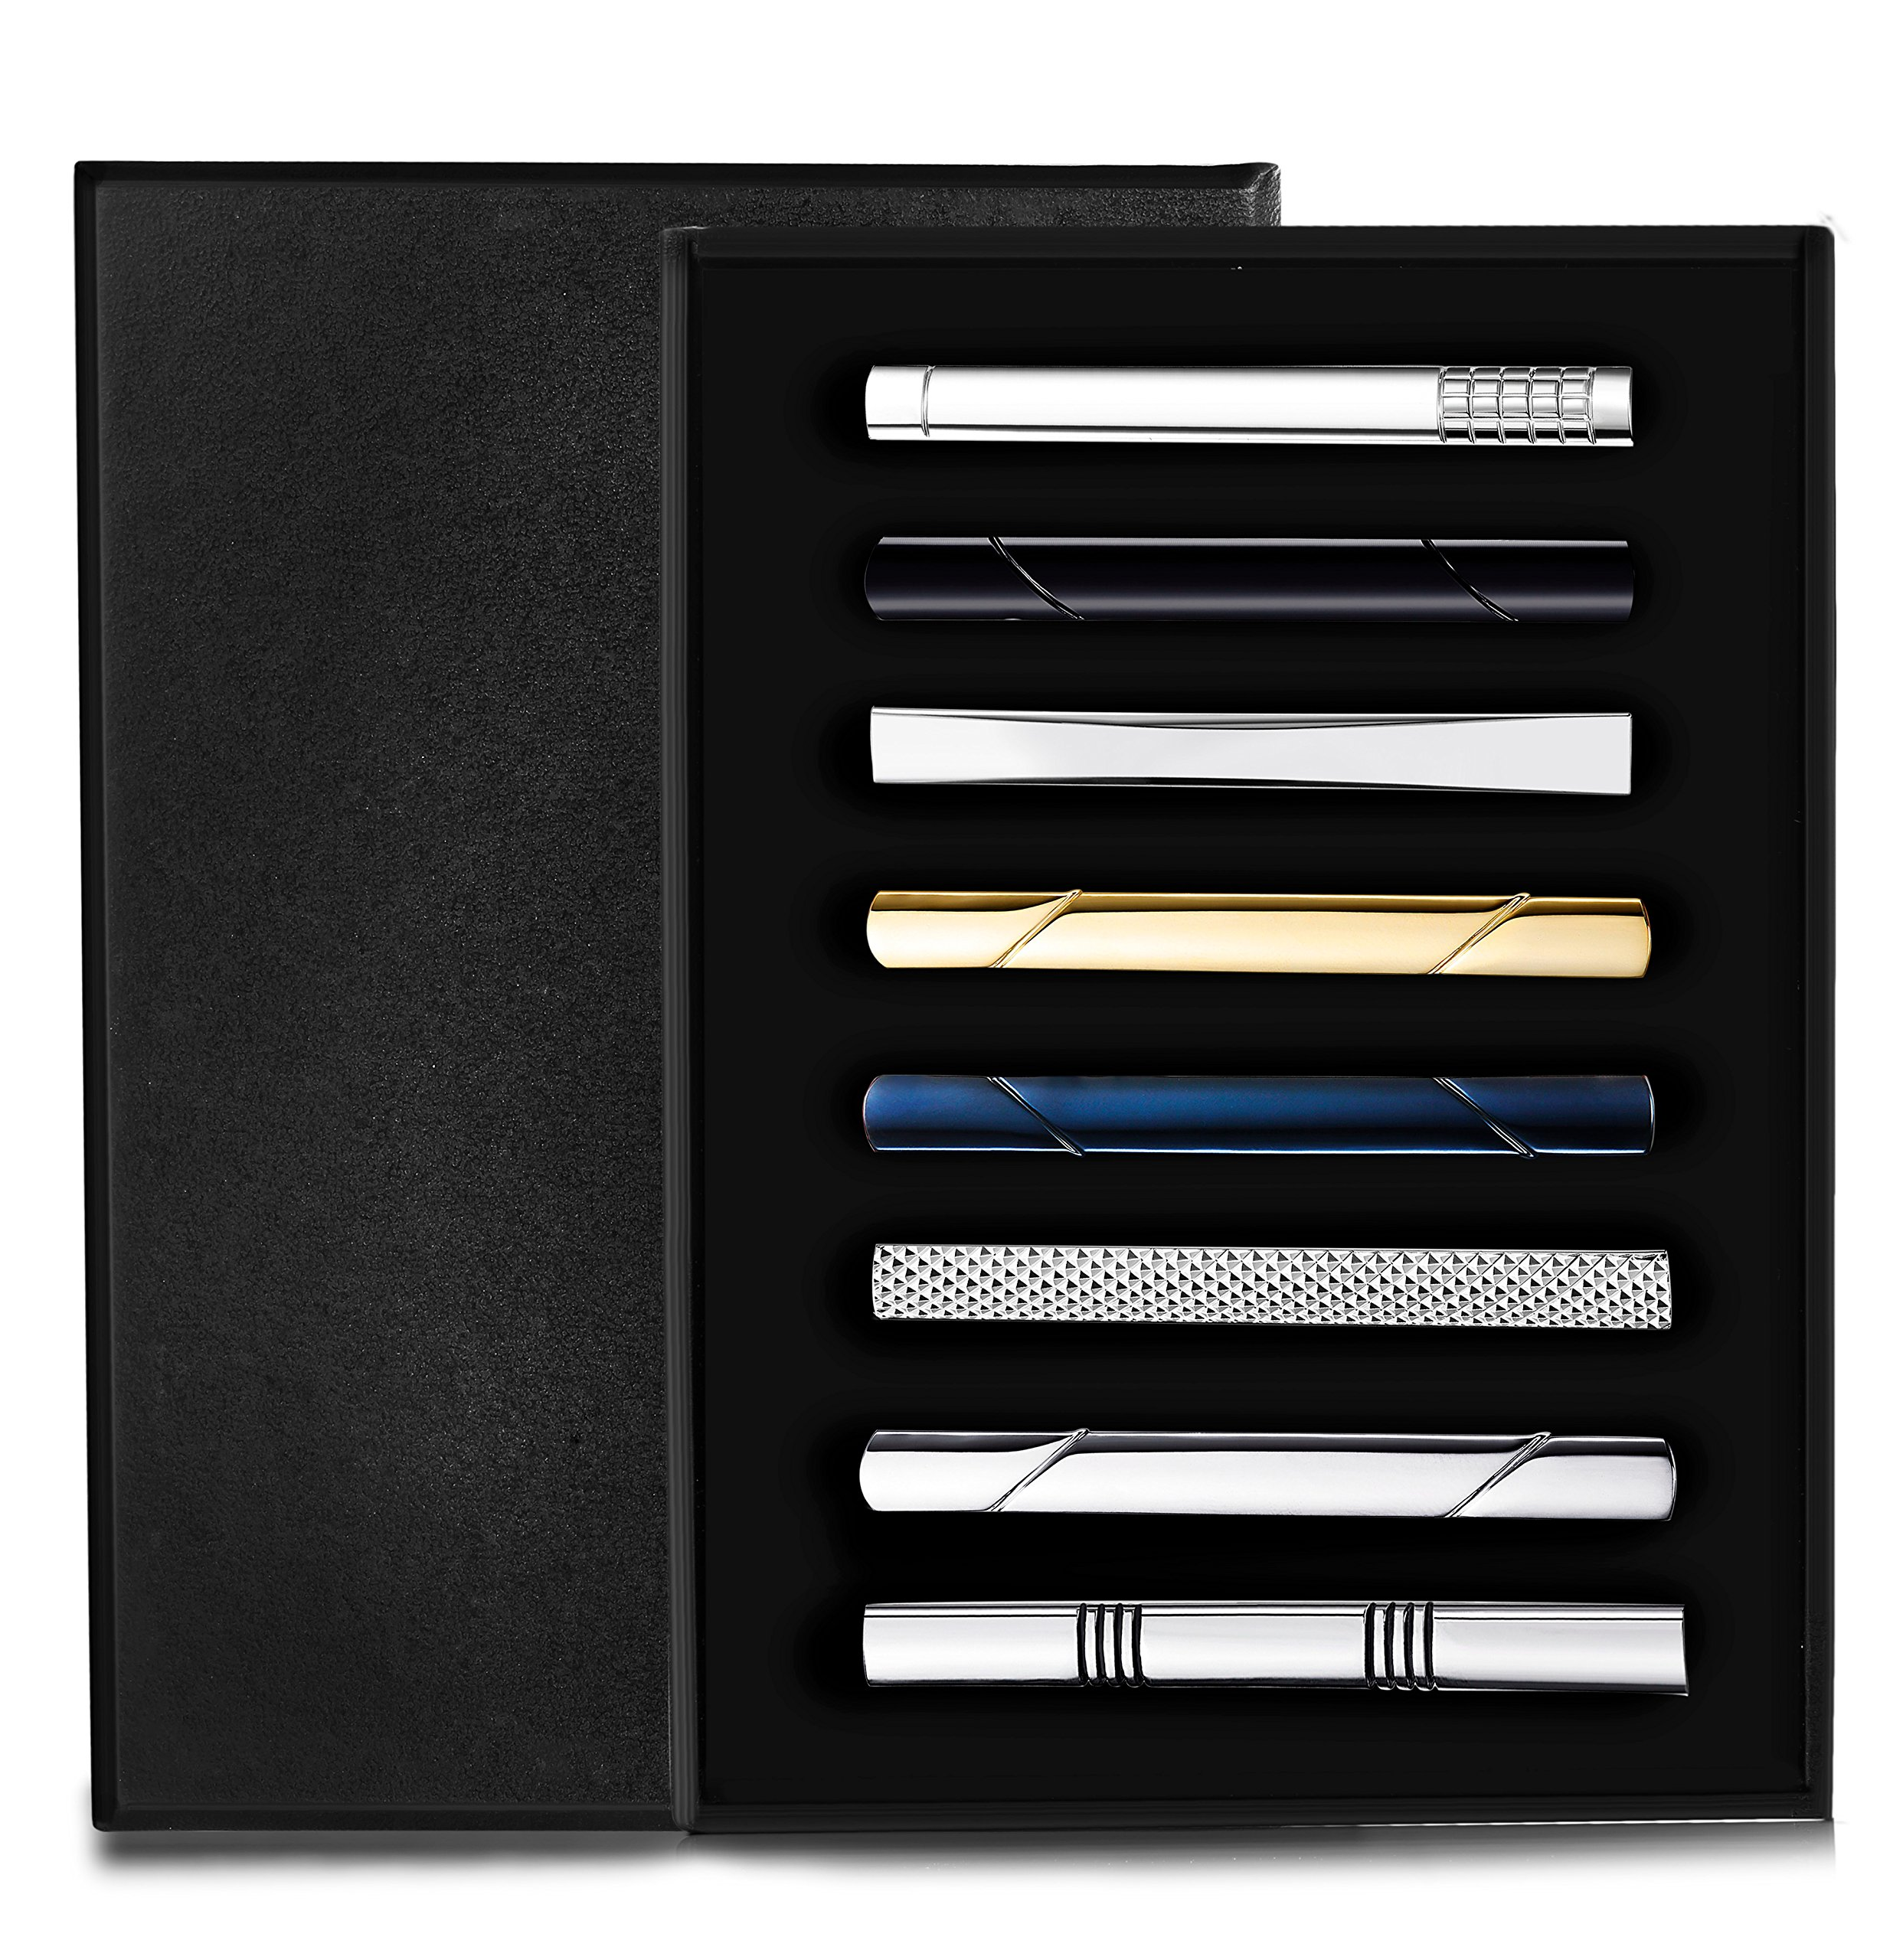 Jstyle 8 Pcs Tie Clips Set for Men Tie Bar Clip Set for Regular Ties Necktie Wedding Business Clips with Box A